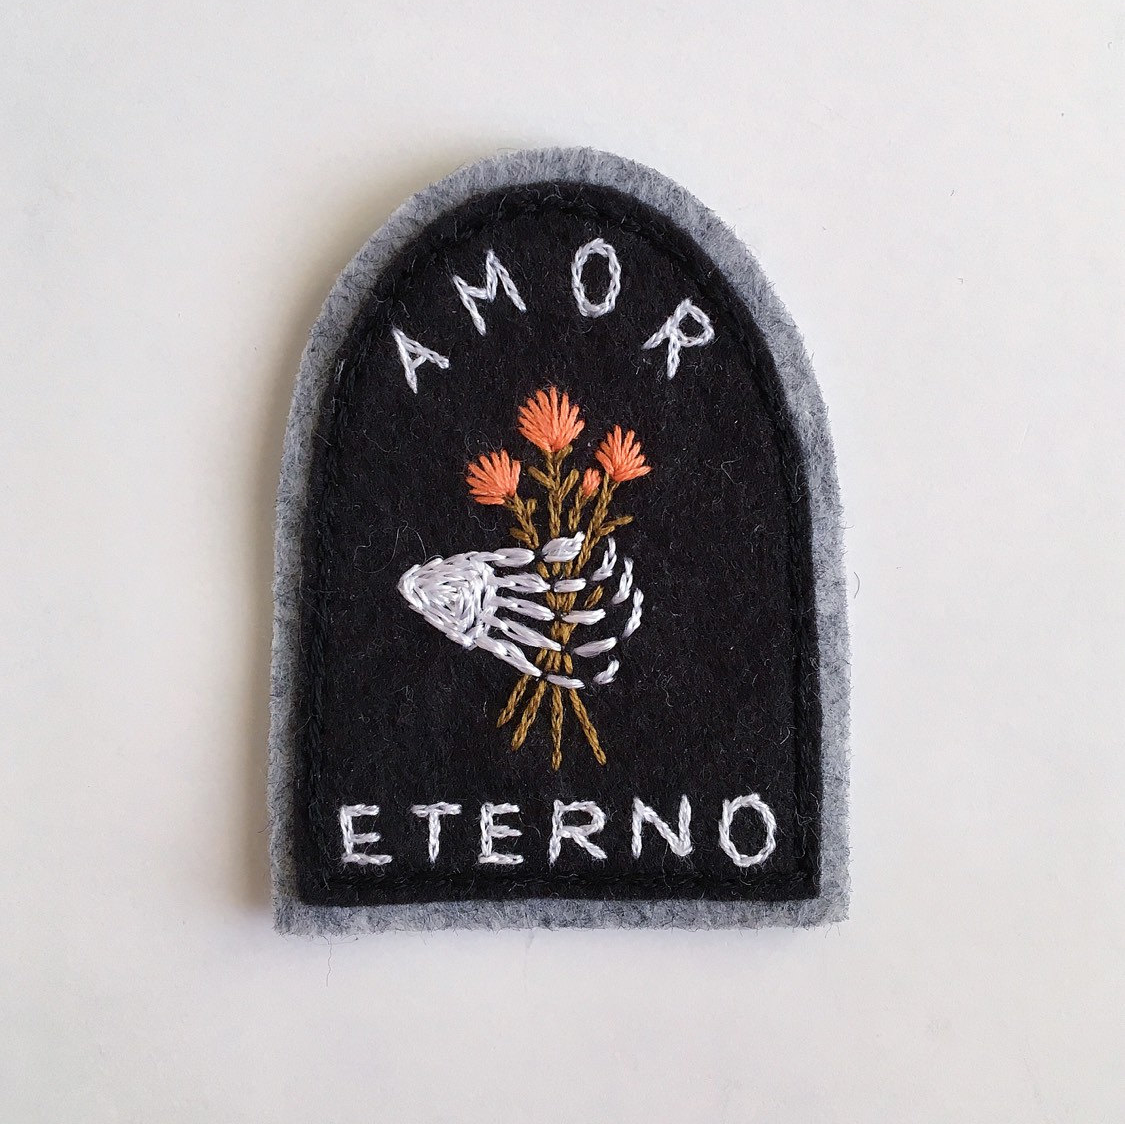 http://sosuperawesome.com/post/138901225067/sosuperawesome-hand-embroidered-patches-by